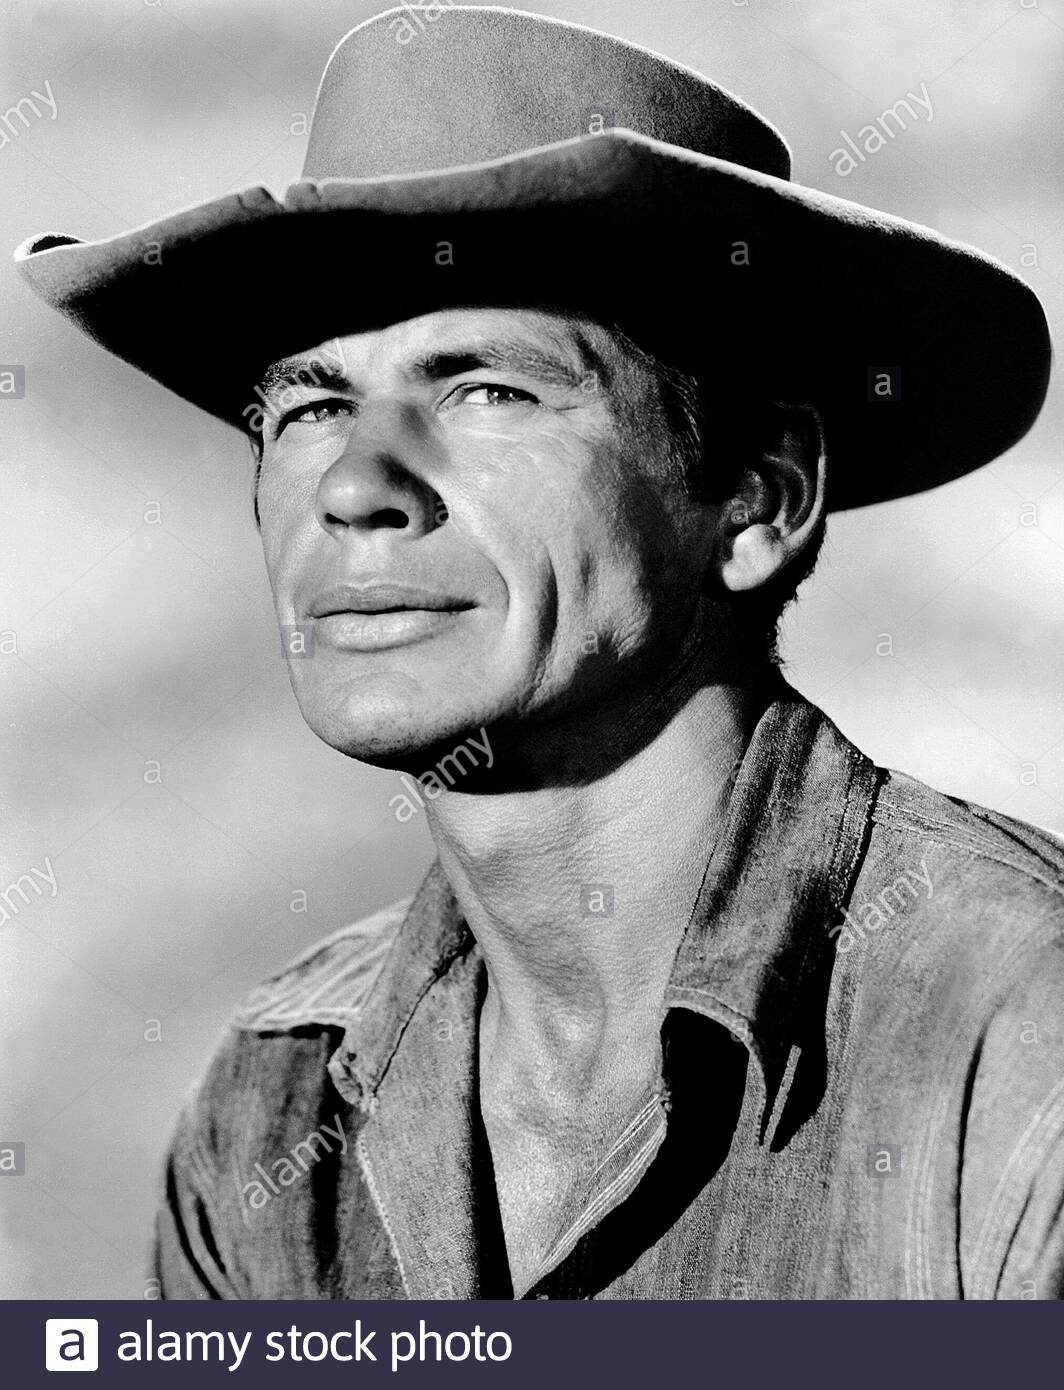 charles-bronson-the-magnificent-seven-1960-2BKBHD7